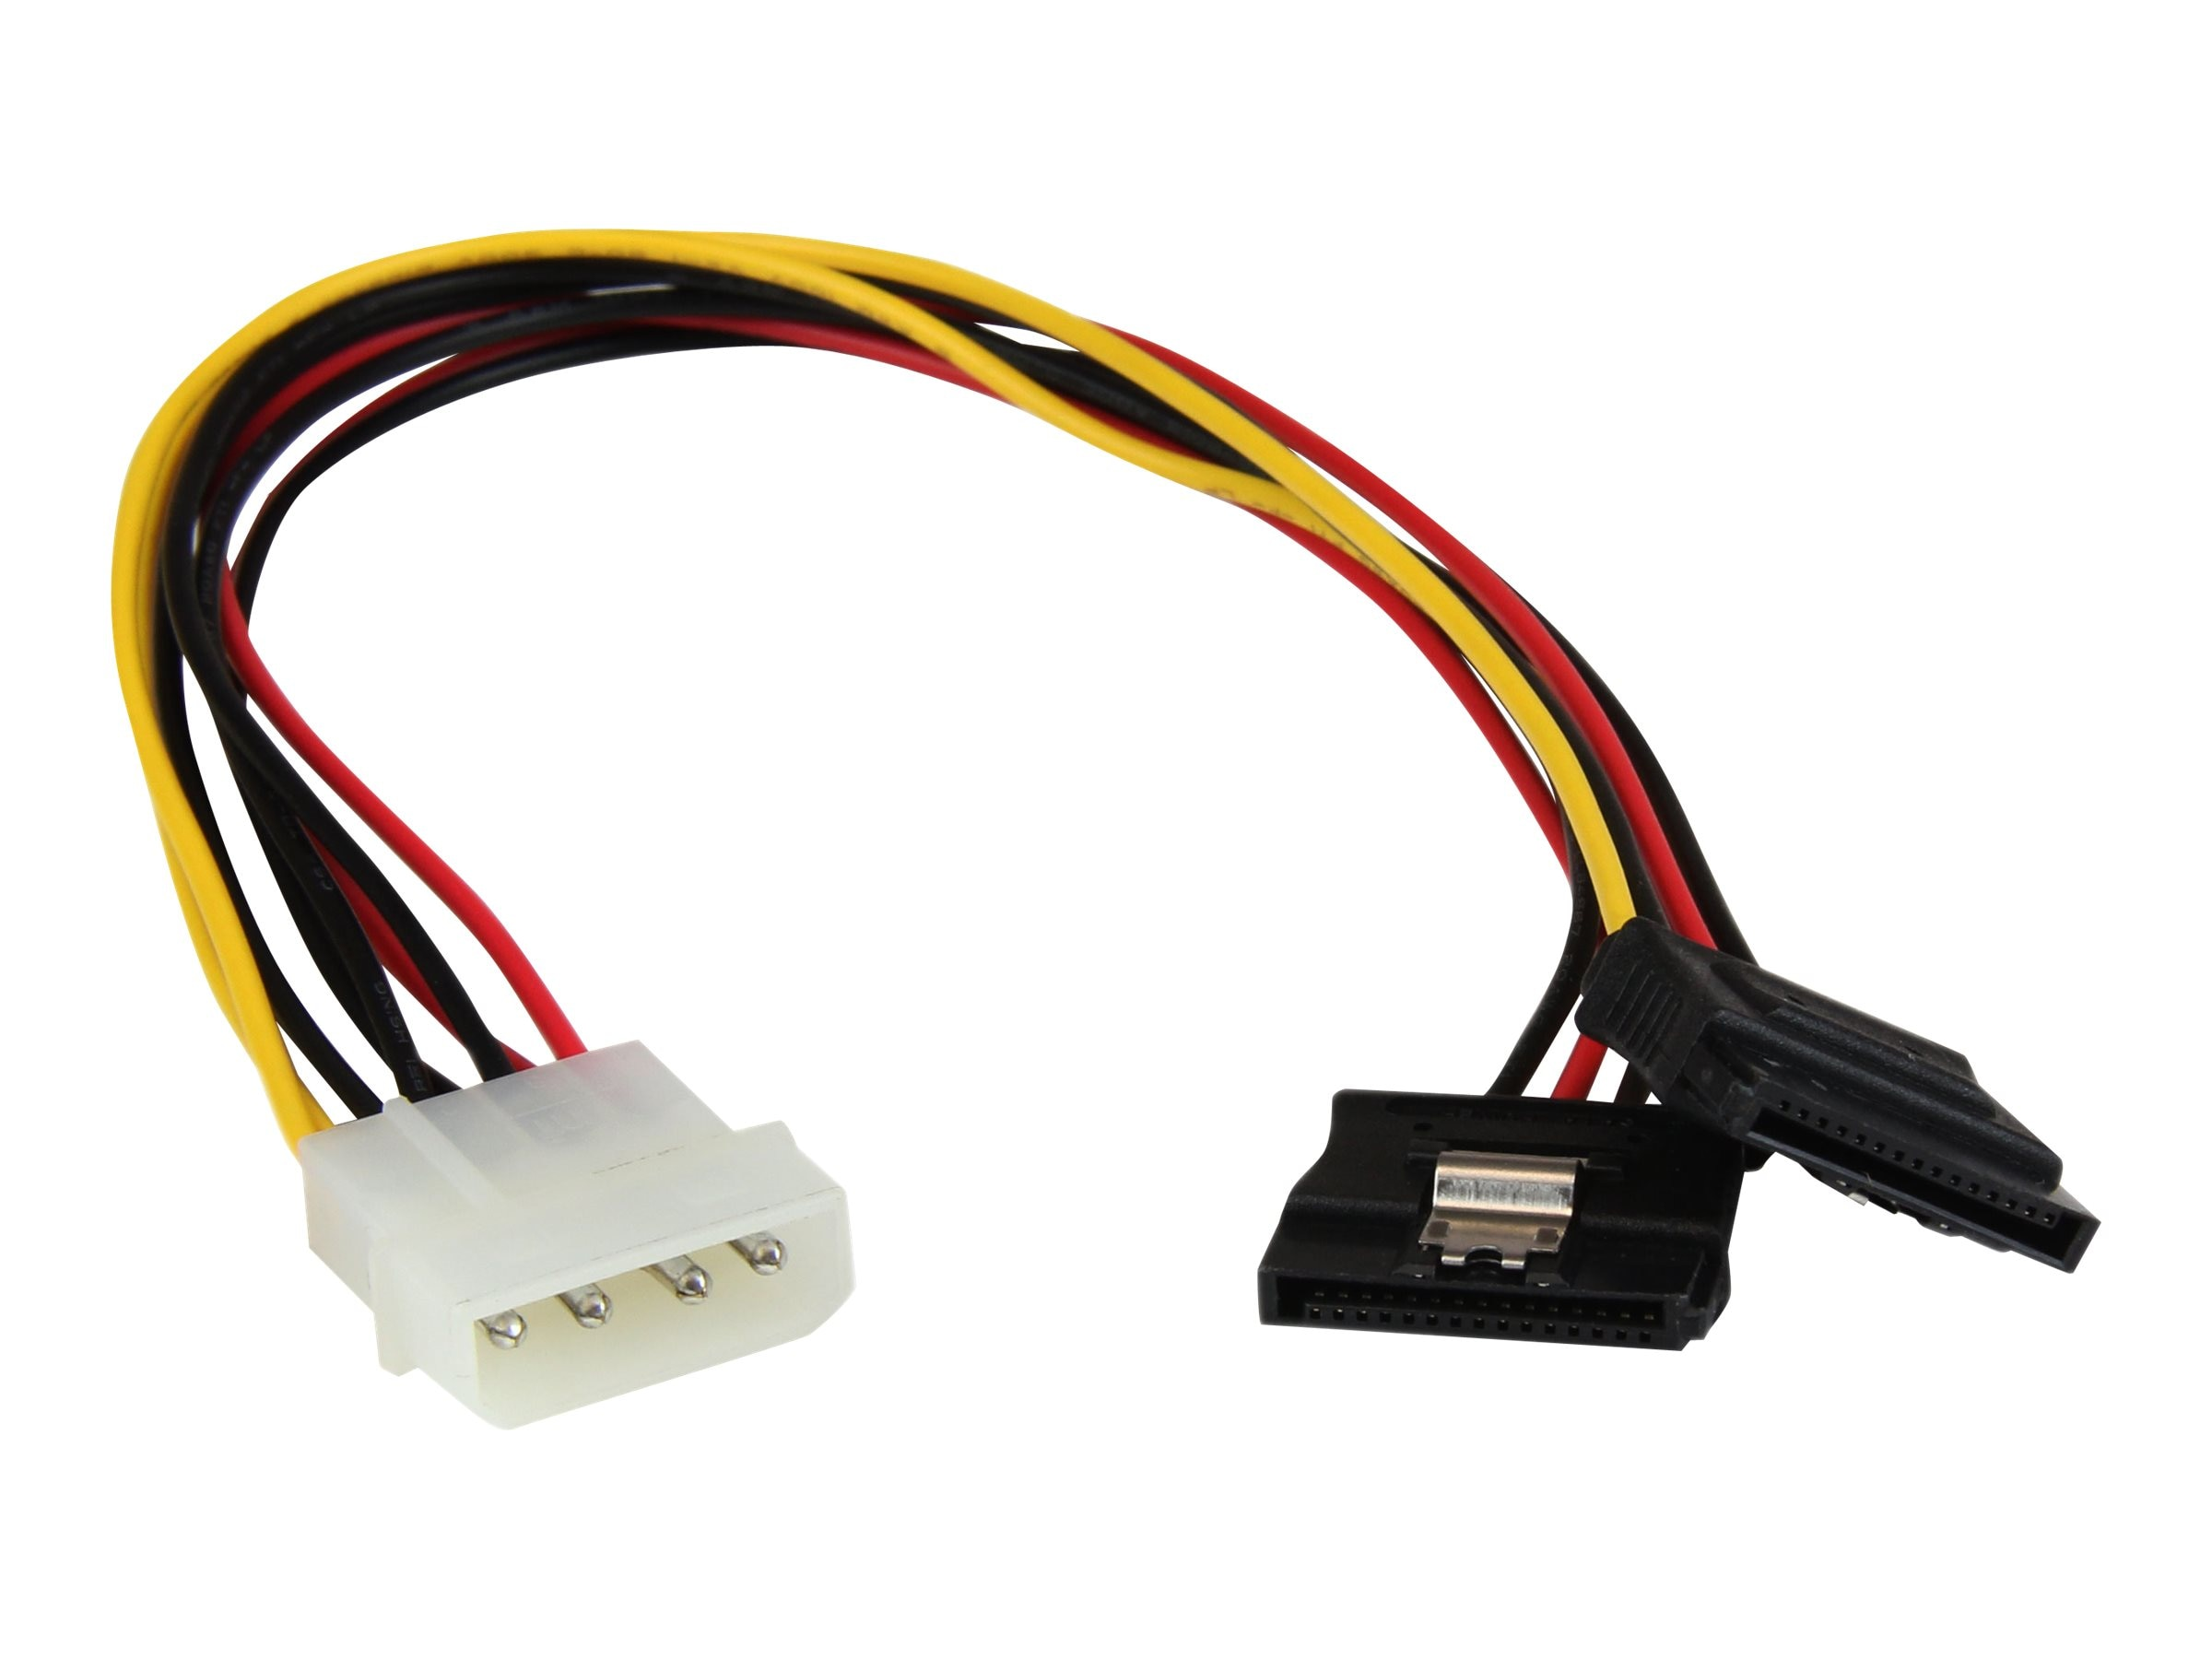 StarTech.com LP4 to 2x Latching SATA Power Y Cable Splitter Adapter, 4 Pin Molex to Dual SATA, 12in, PYO2LP4LSATA